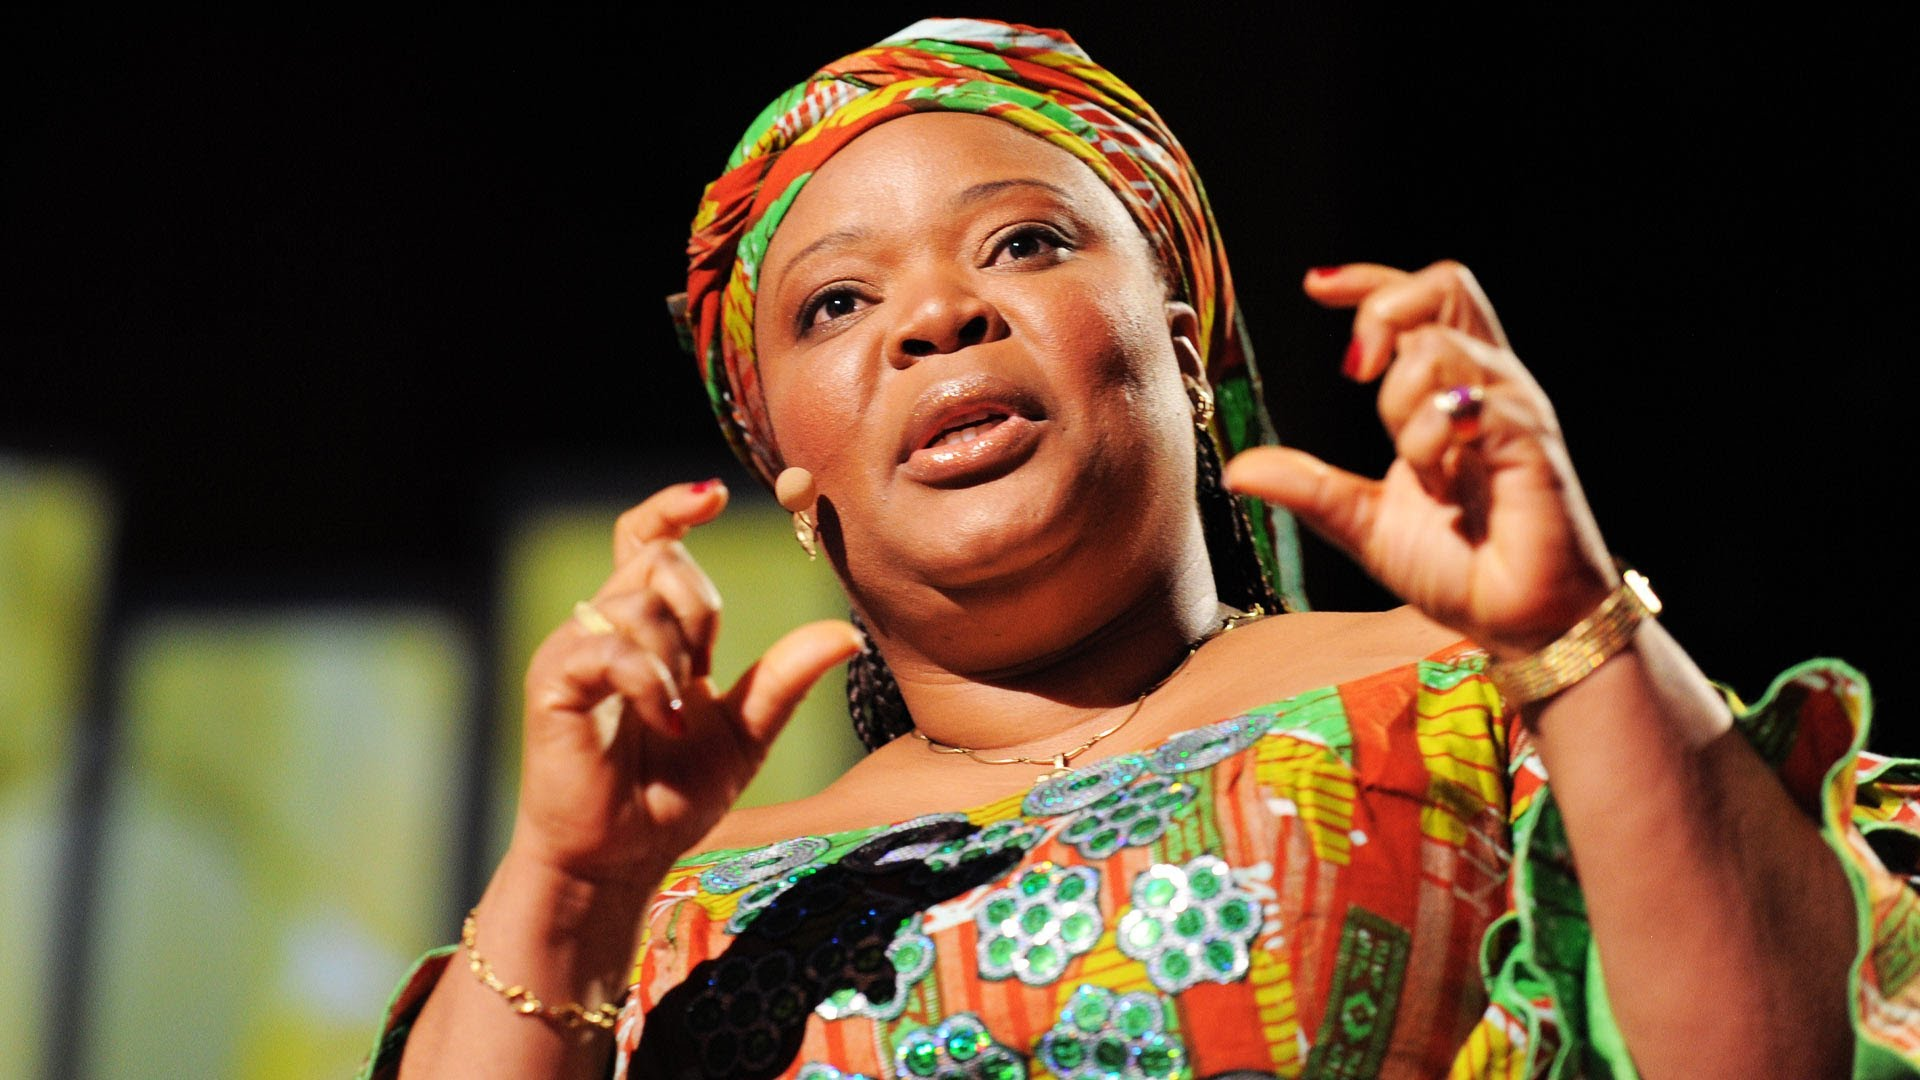 「Leymah Gbowee:釋放女性的無限潛能」- Unlock the Intelligence, Passion, Greatness of Girls